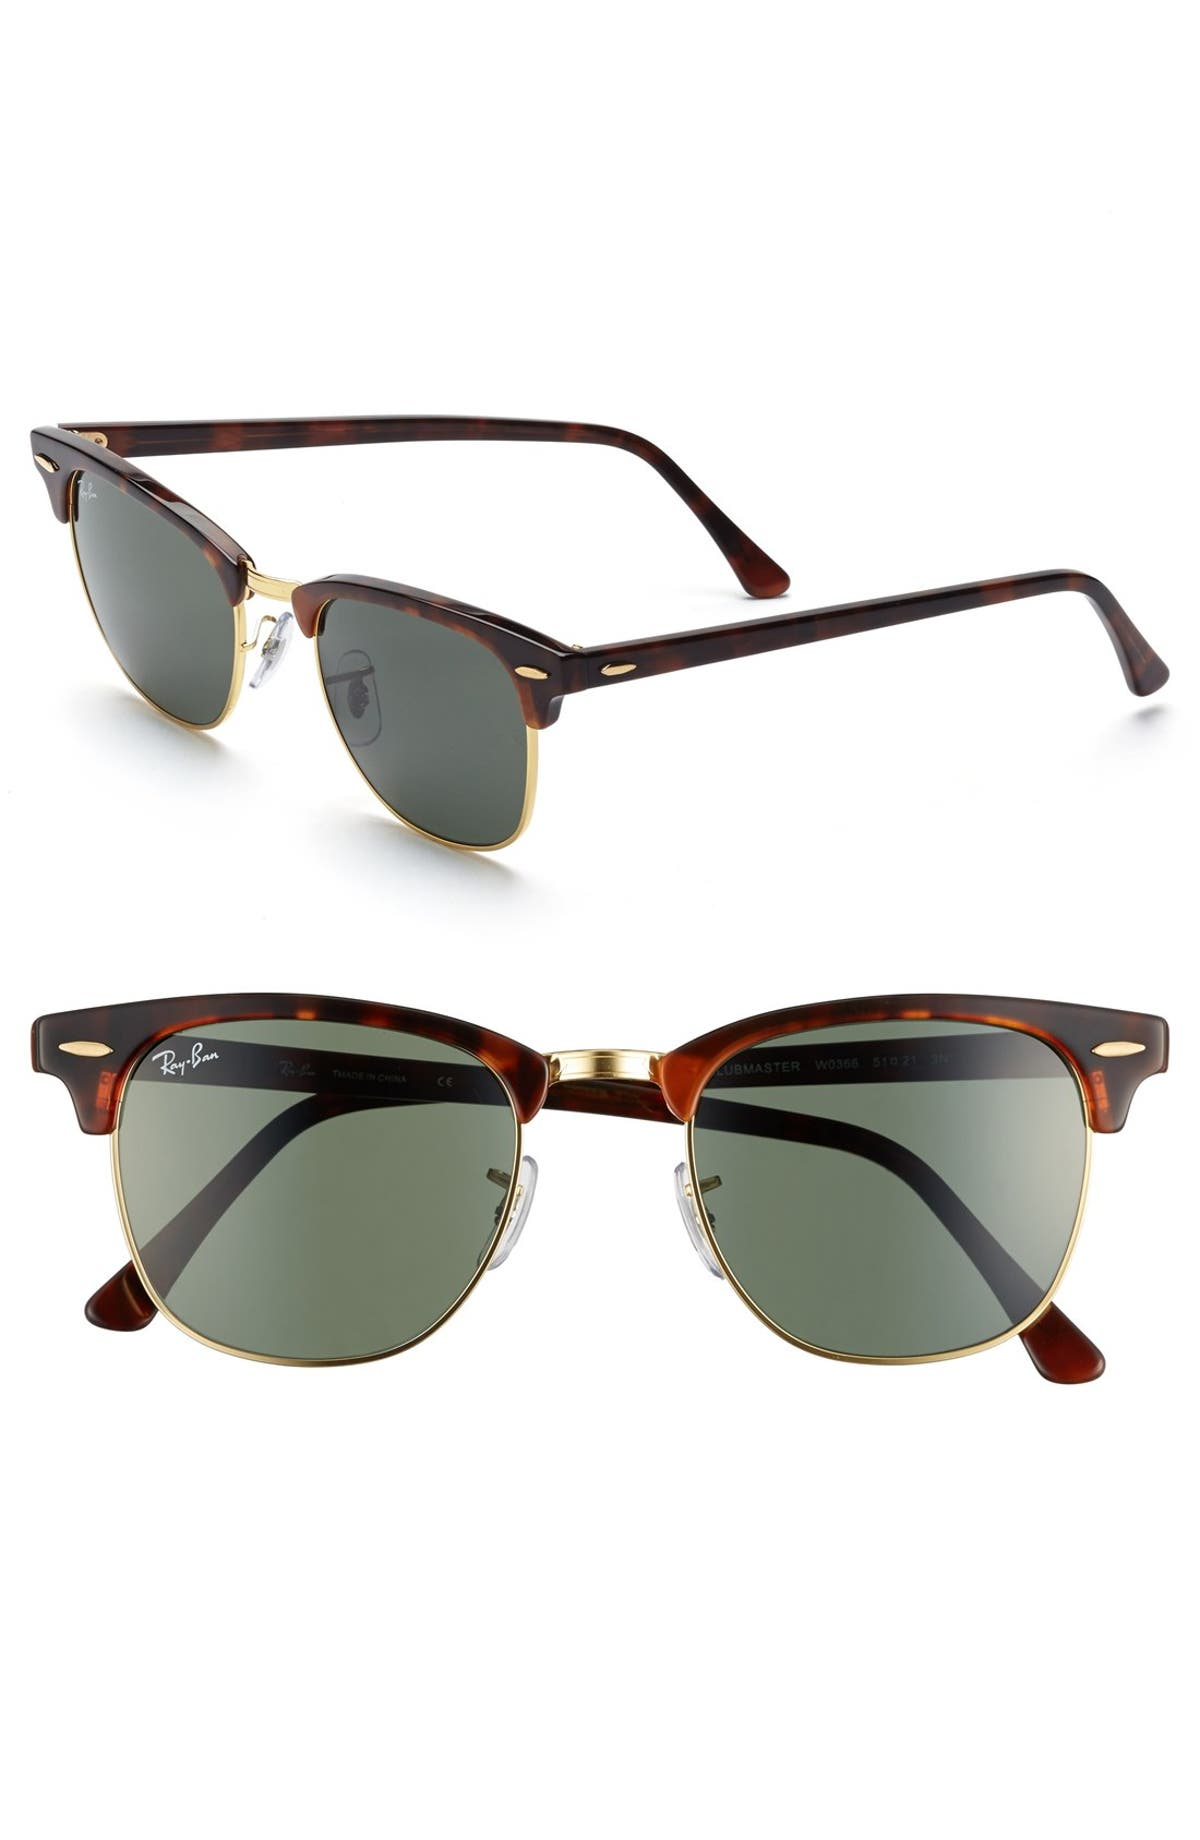 Ray-Ban Classic Clubmaster 51mm Sunglasses  c98f61445663b